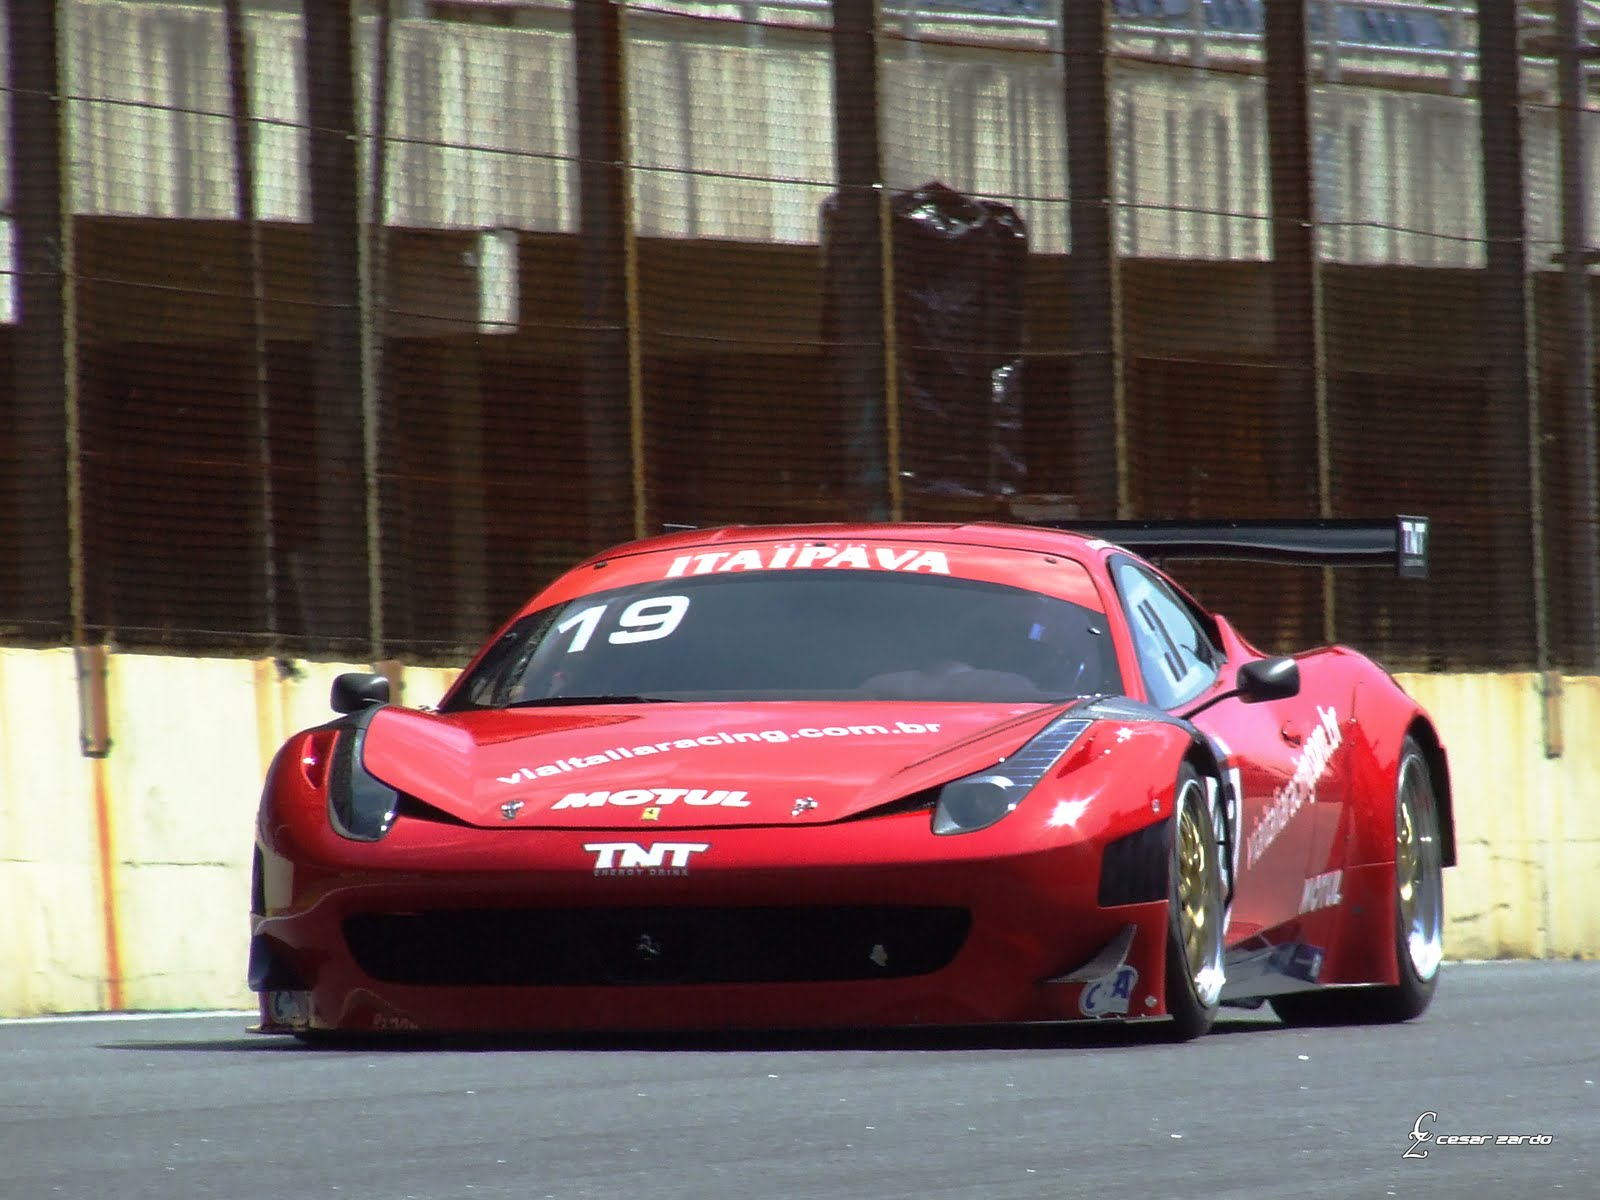 POSE FERRARI PHOTOS WALLPAPERS: Ferrari F458 Gt3